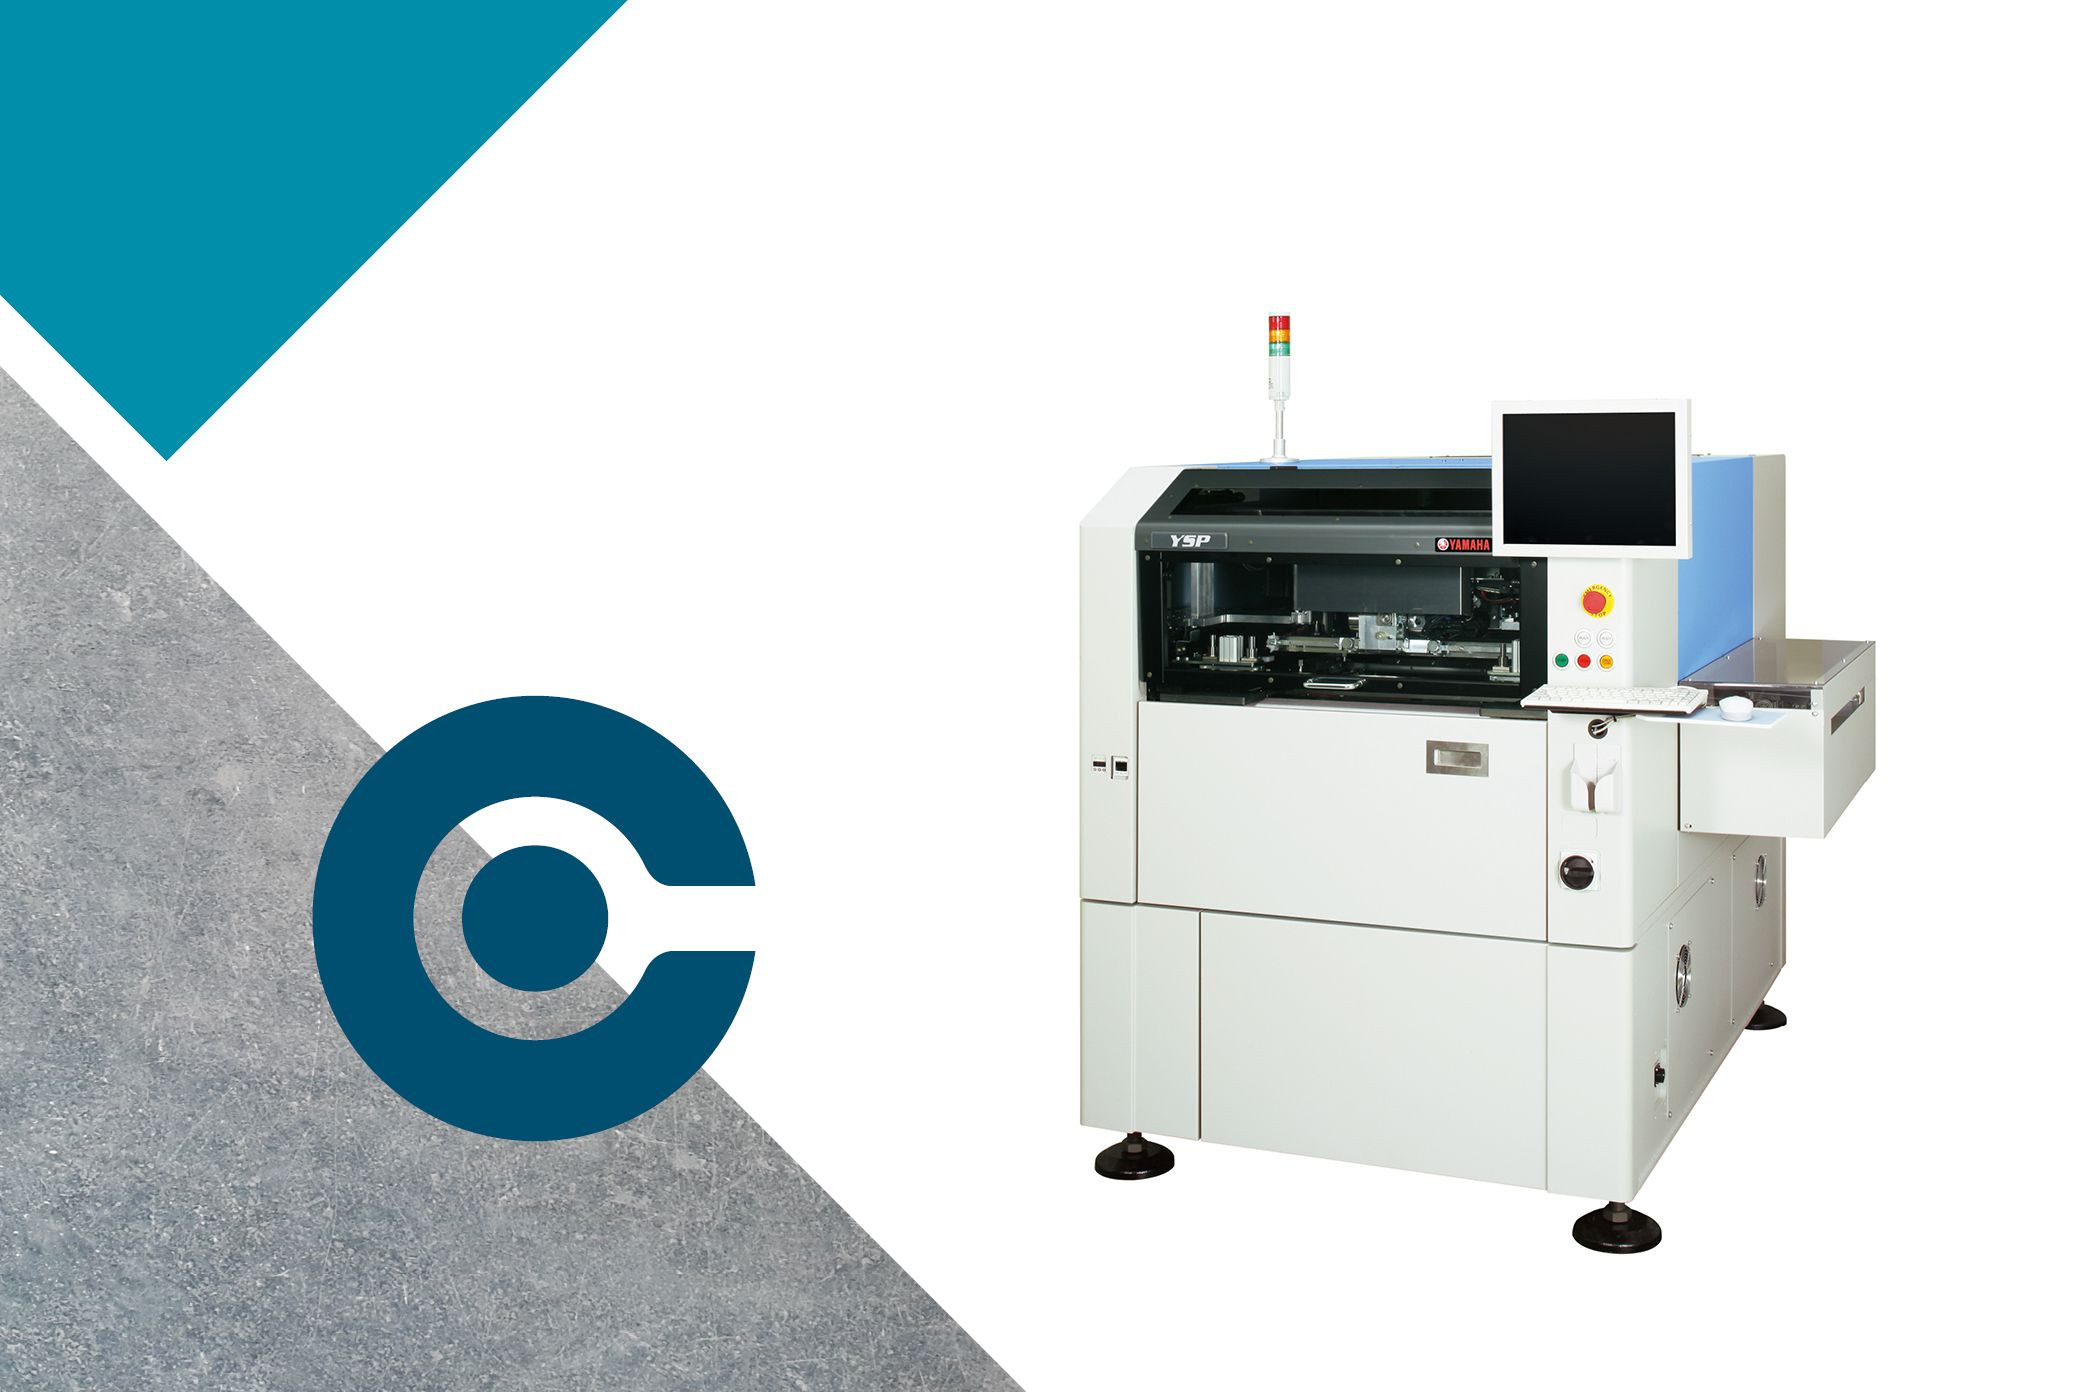 YSP machine for solder paste screen printing